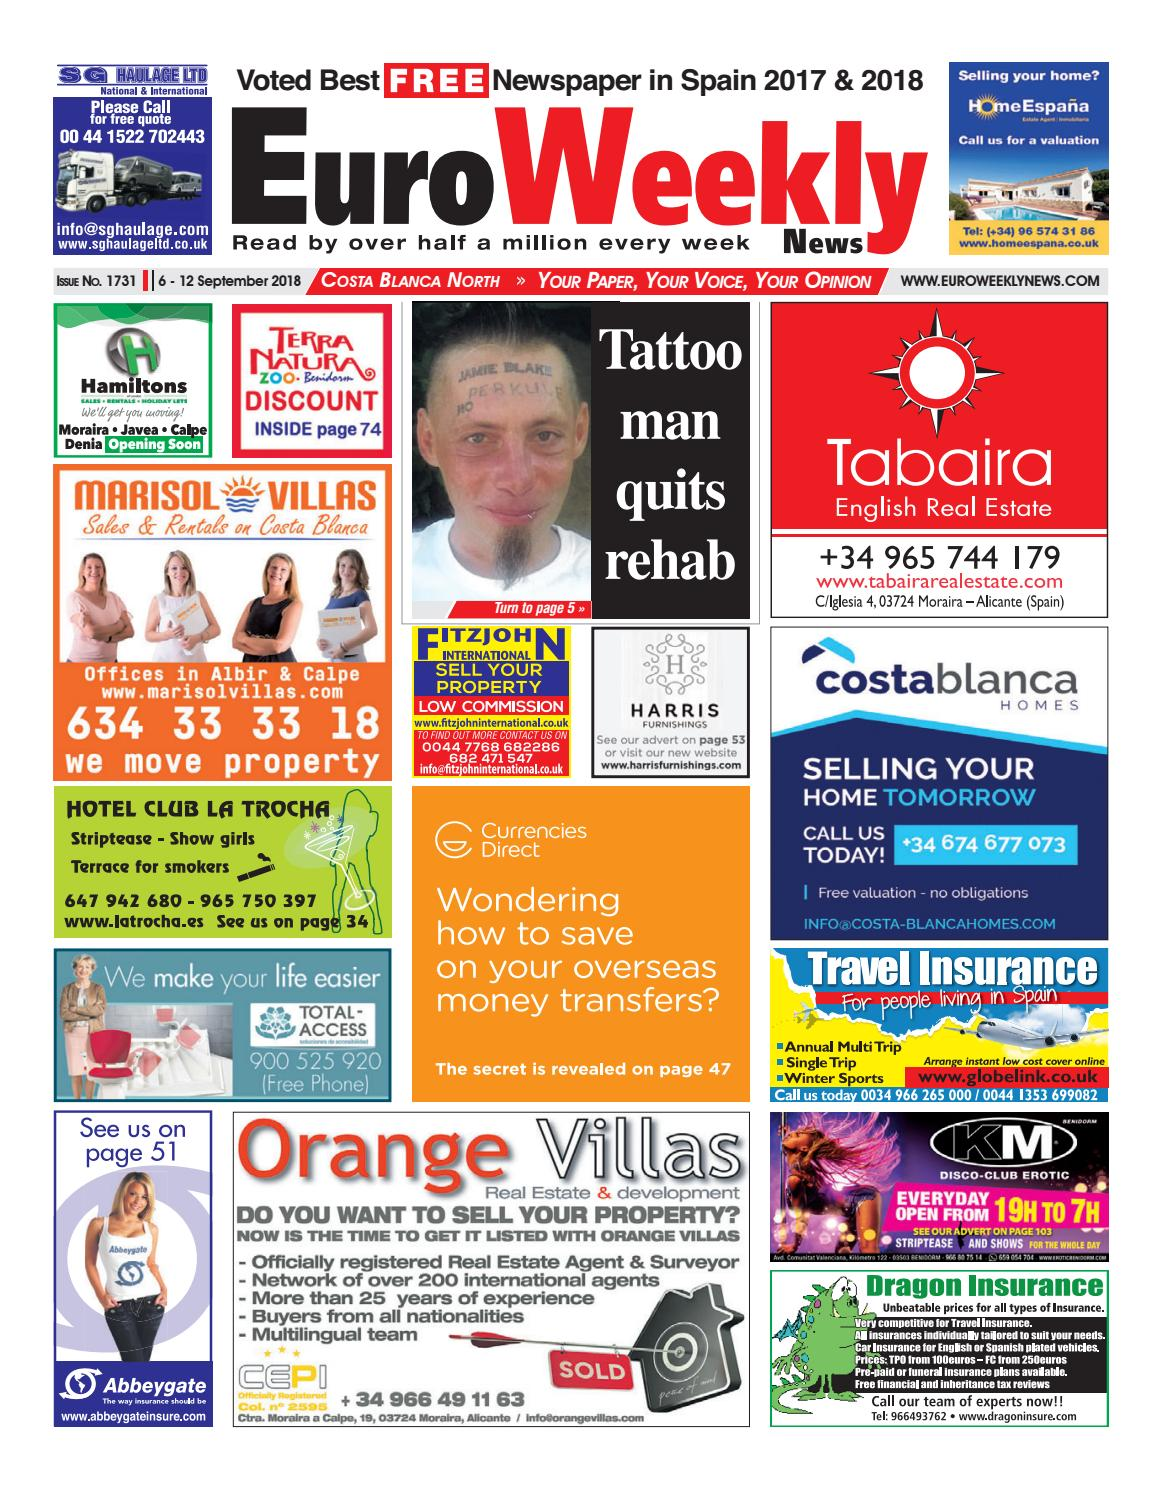 b3831dc50c1 Euro Weekly News - Costa Blanca North 6 - 12 September 2018 Issue 1731